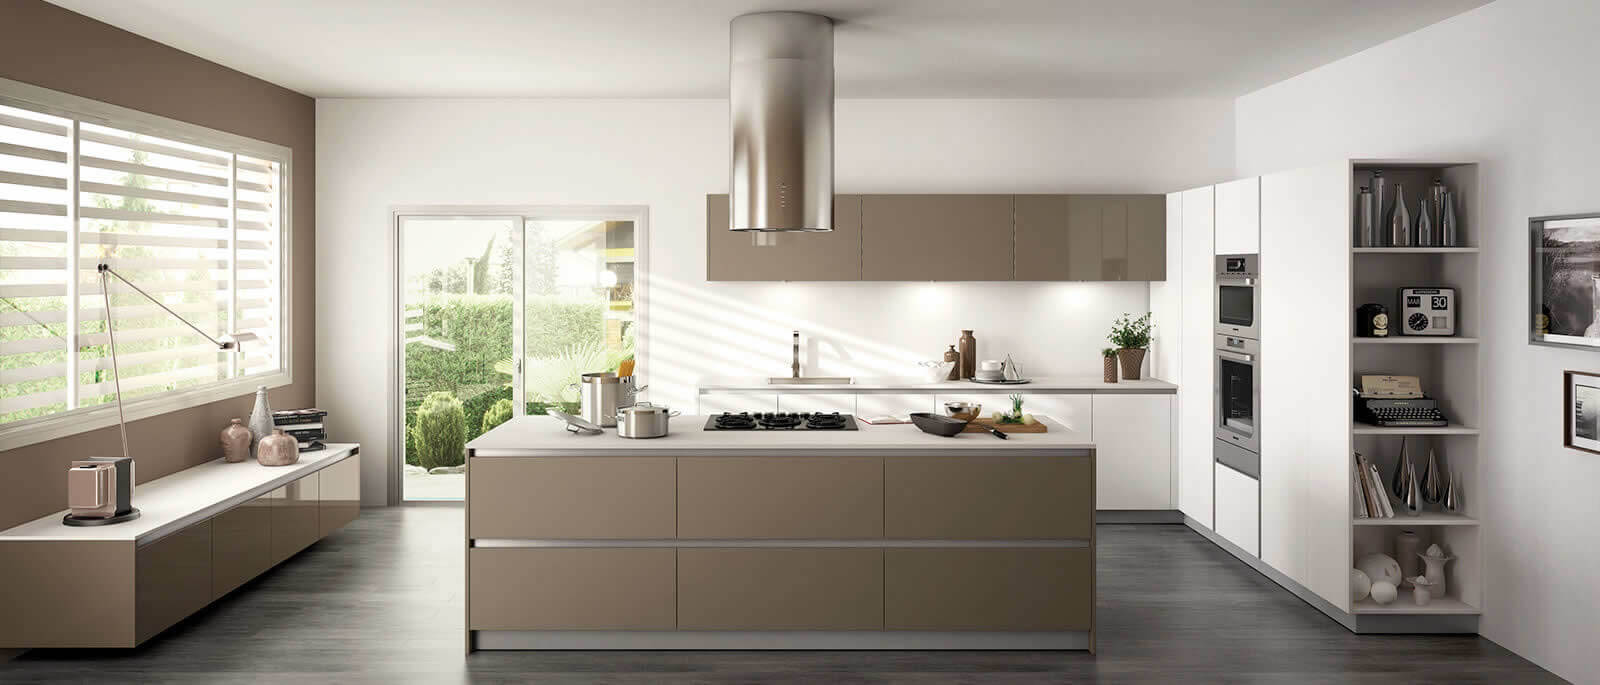 Kitchens nolan kitchens contemporary kitchens fitted kitchens - Images of kitchens ...